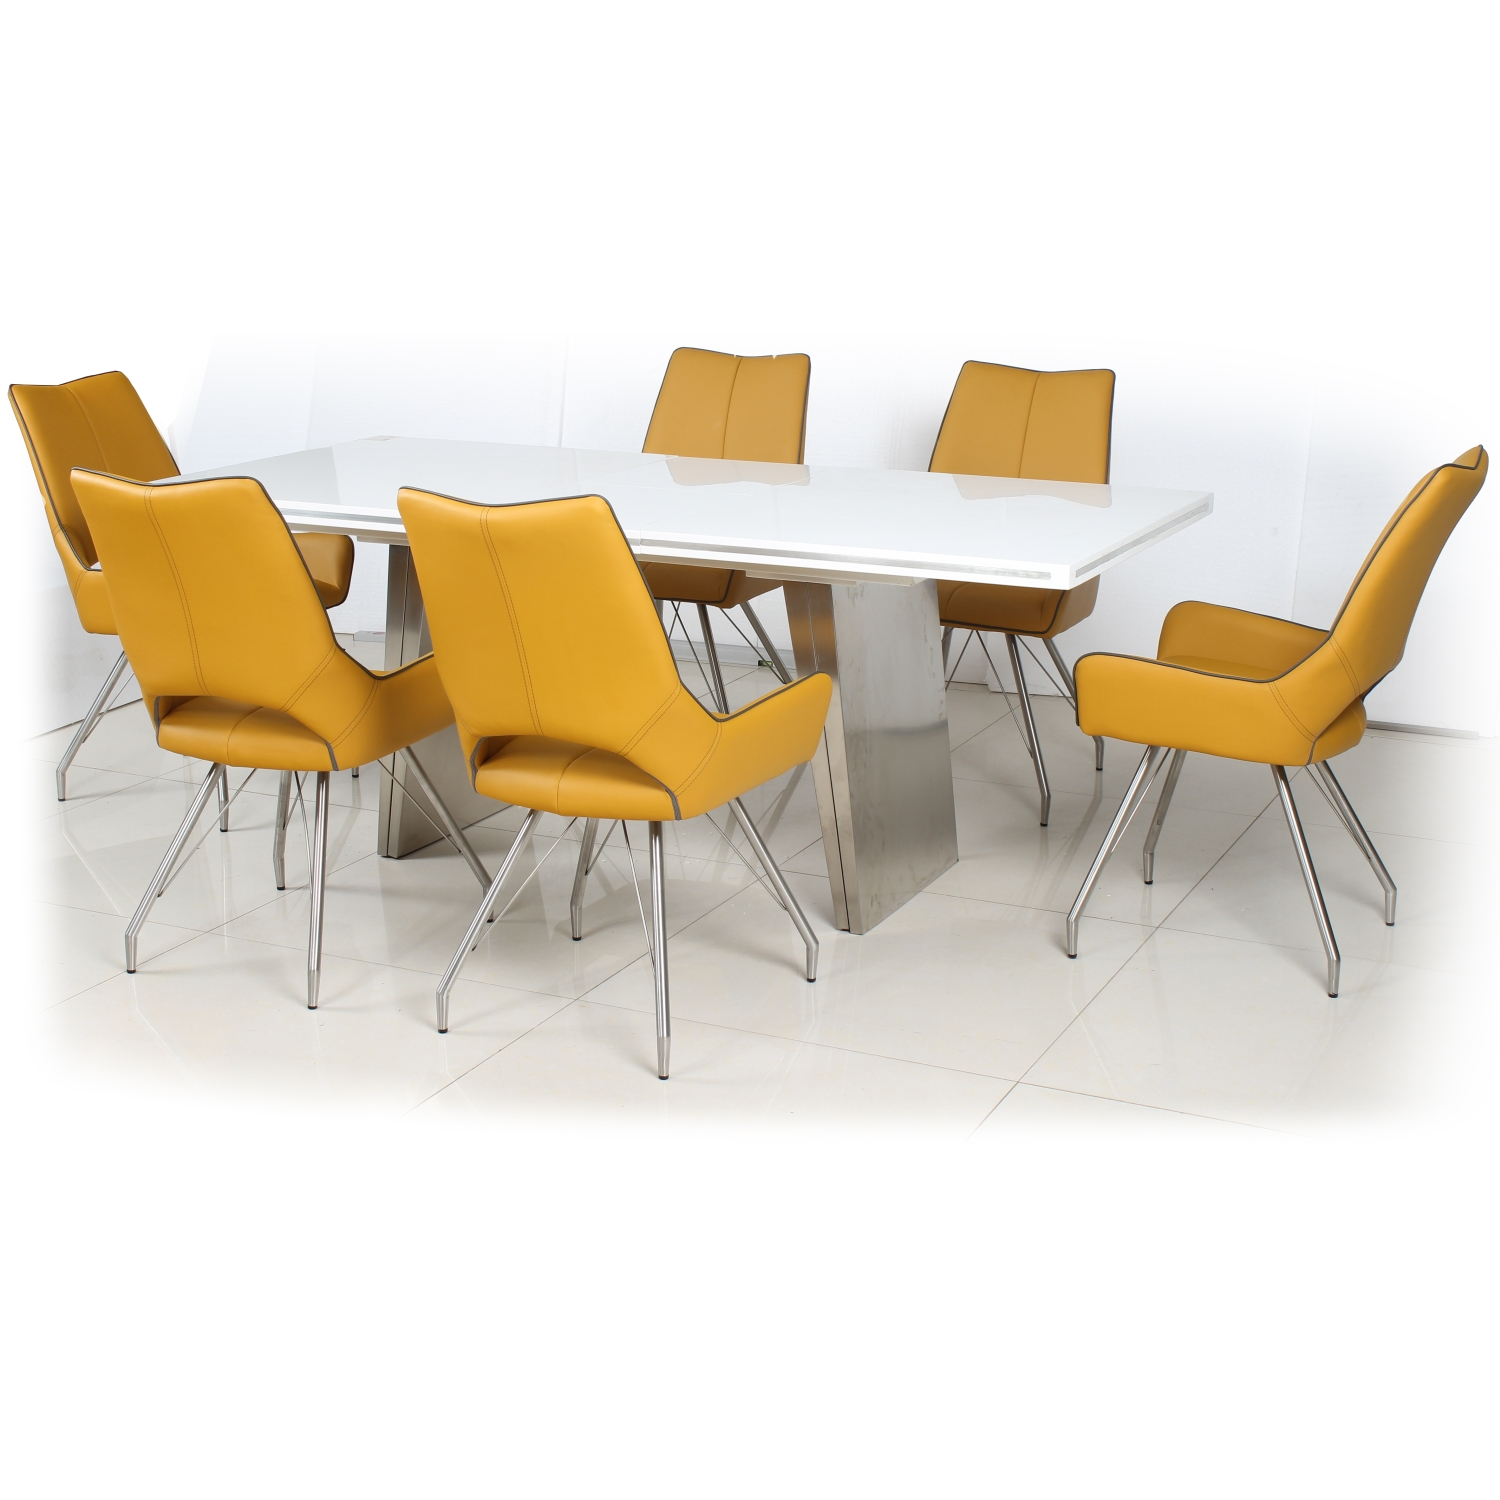 White High Gloss Extendable Dining Table with 6 Grass Green Leather Effect Chairs with Piping